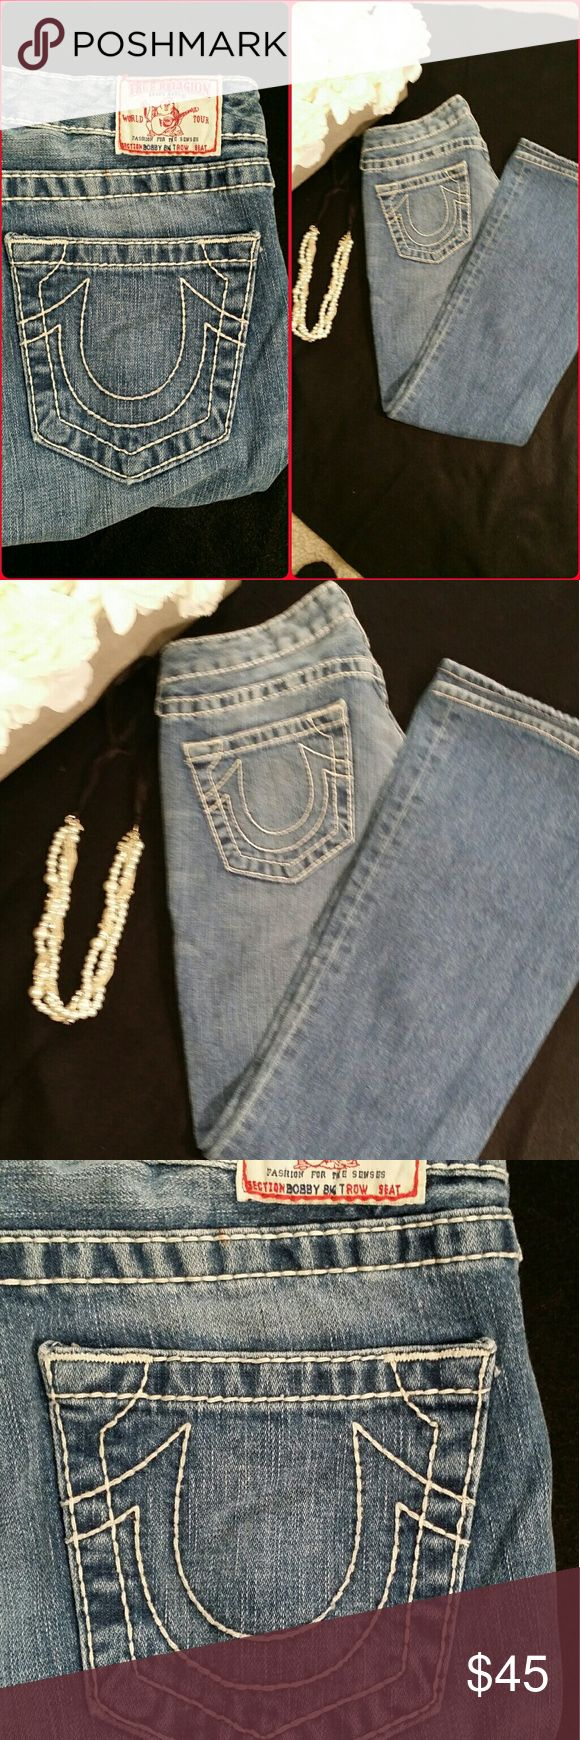 True Religion Jean light blue True Religion light blue denim  boot cut jeans with white horseshoe stitching. These are a size 28. Preowned. No rips, no tears, holes or stains. No hem wear at bottom. True Religion Jeans Boot Cut